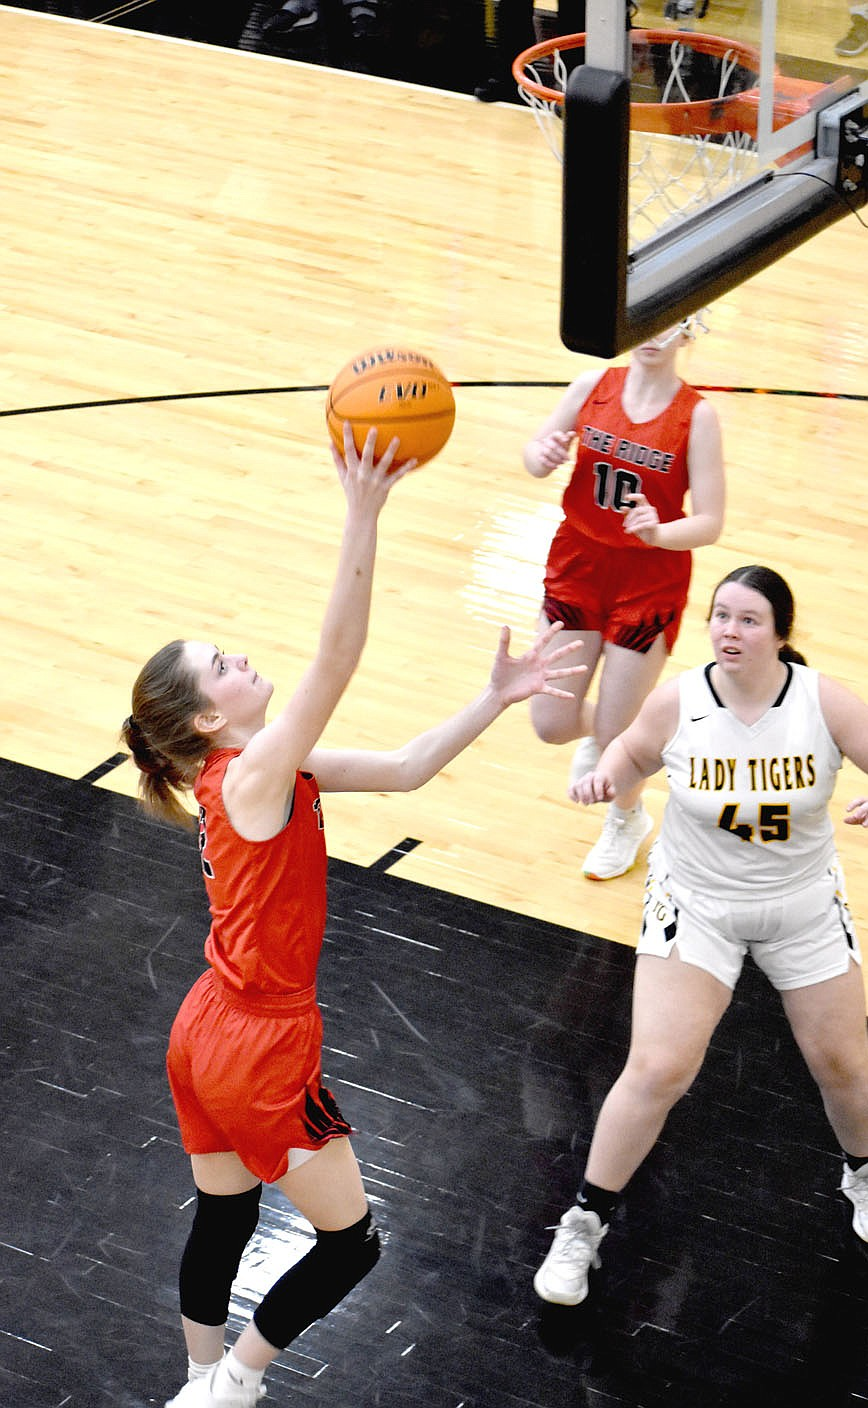 MARK HUMPHREY  ENTERPRISE-LEADER/Pea Ridge senior Aiden Dayberry scores a layup against Prairie Grove. Dayberry contributed 9 points in the Lady Blackhawks' 65-38 win in 4A-1 Conference girls basketball action at Tiger Arena on Tuesday, Feb. 9.